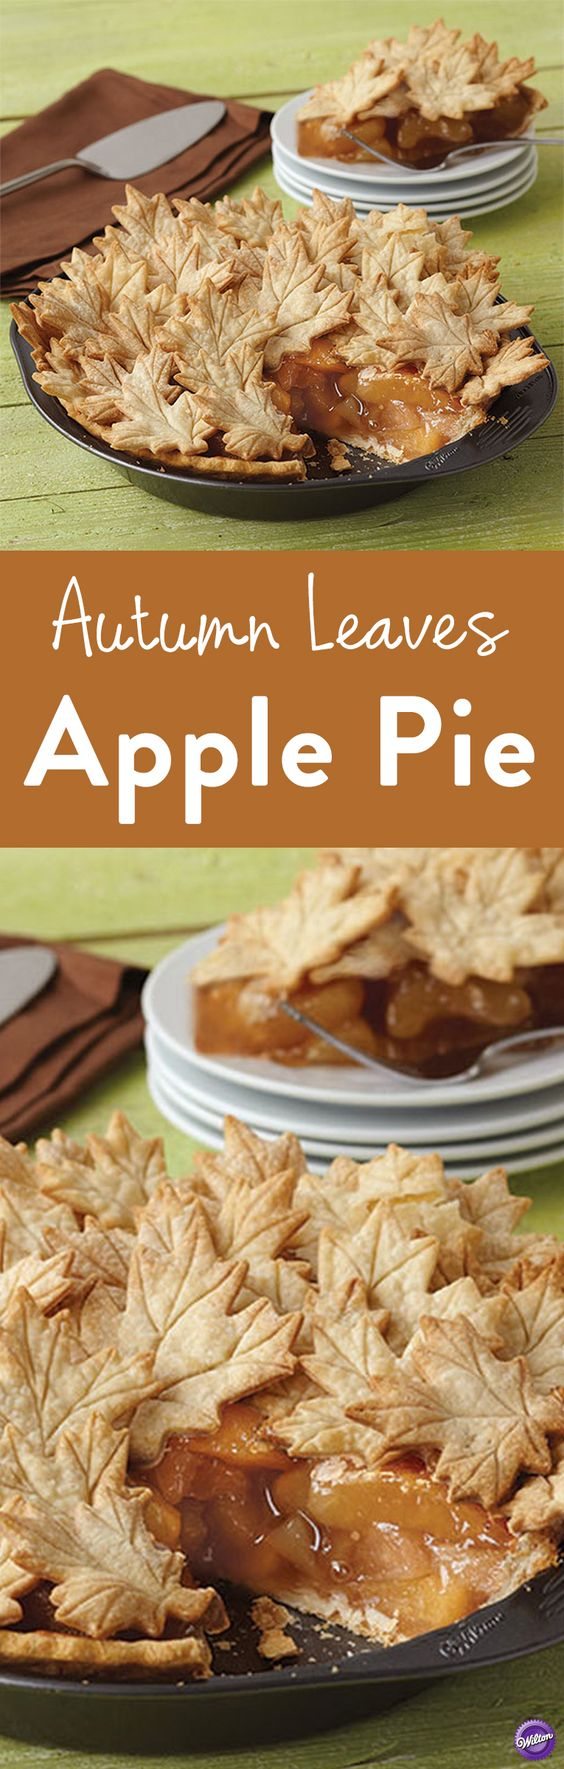 Autumn Leaves Apple Pie Recipe - Add a fancy touch to fall's signature dessert by adding pretty maple leaves crust atop an apple pie. Use the Wilton Leaves & Acorns Cutter Set to cut crust in various leaf sizes to make the pretty leaves.  Bake the pie in the 9 in. deep pie pan. Makes 8 servings.: